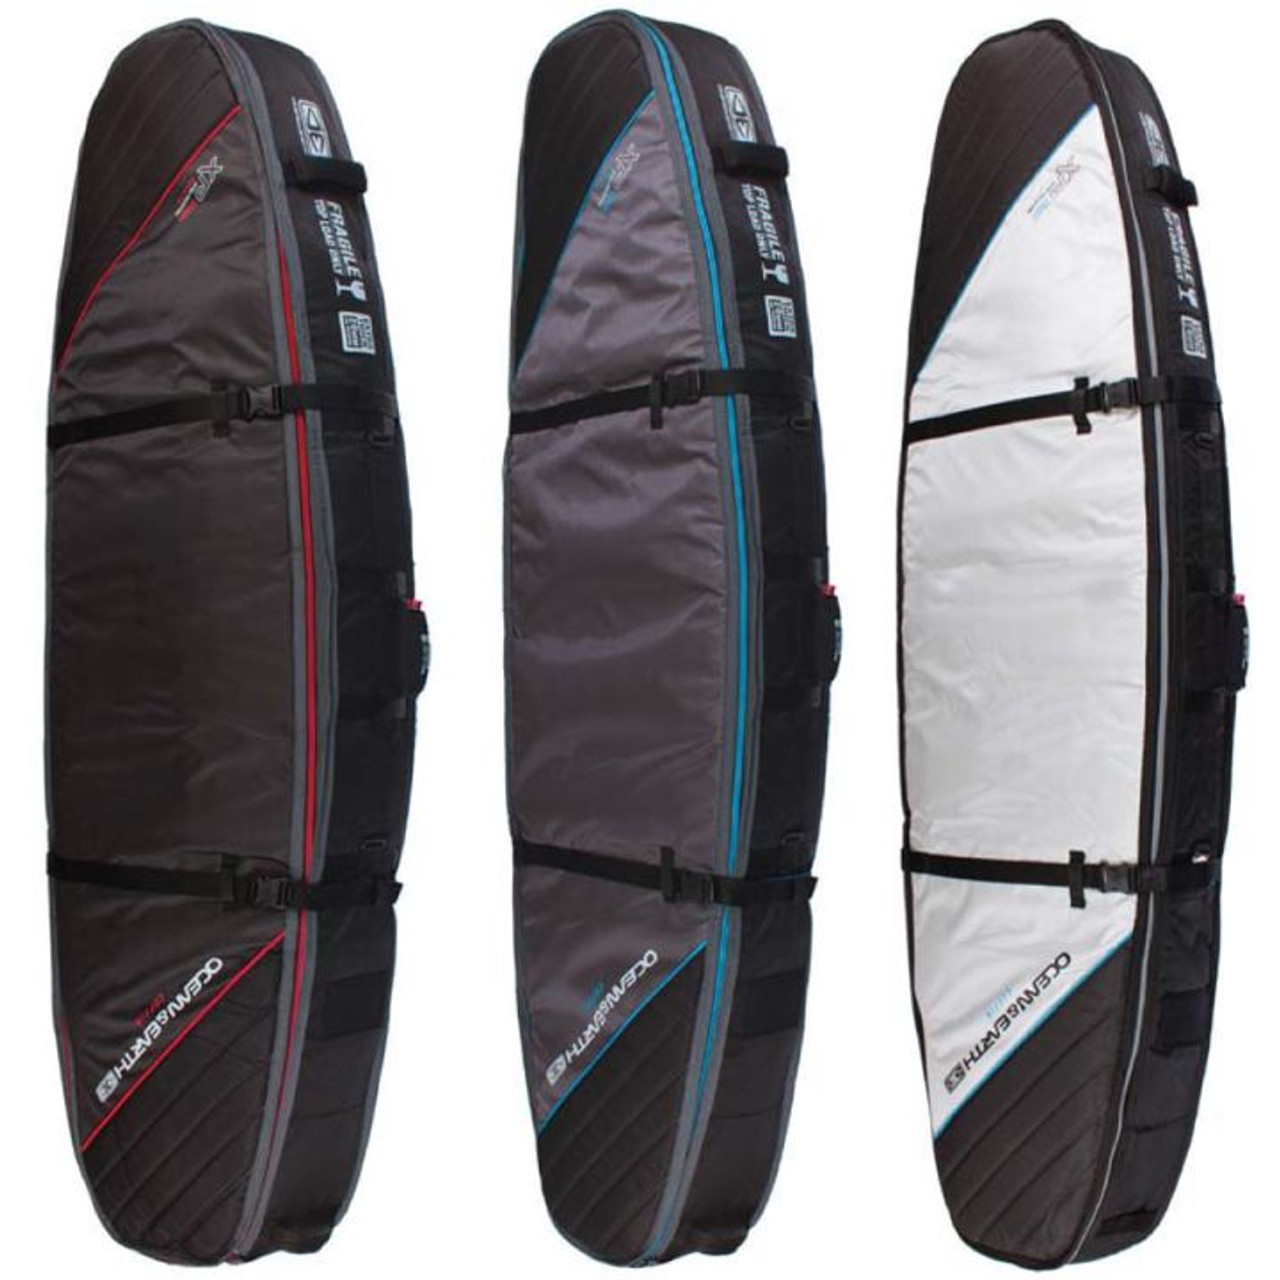 46b4eed767d4 Buy Double Coffin Surfboard Cover